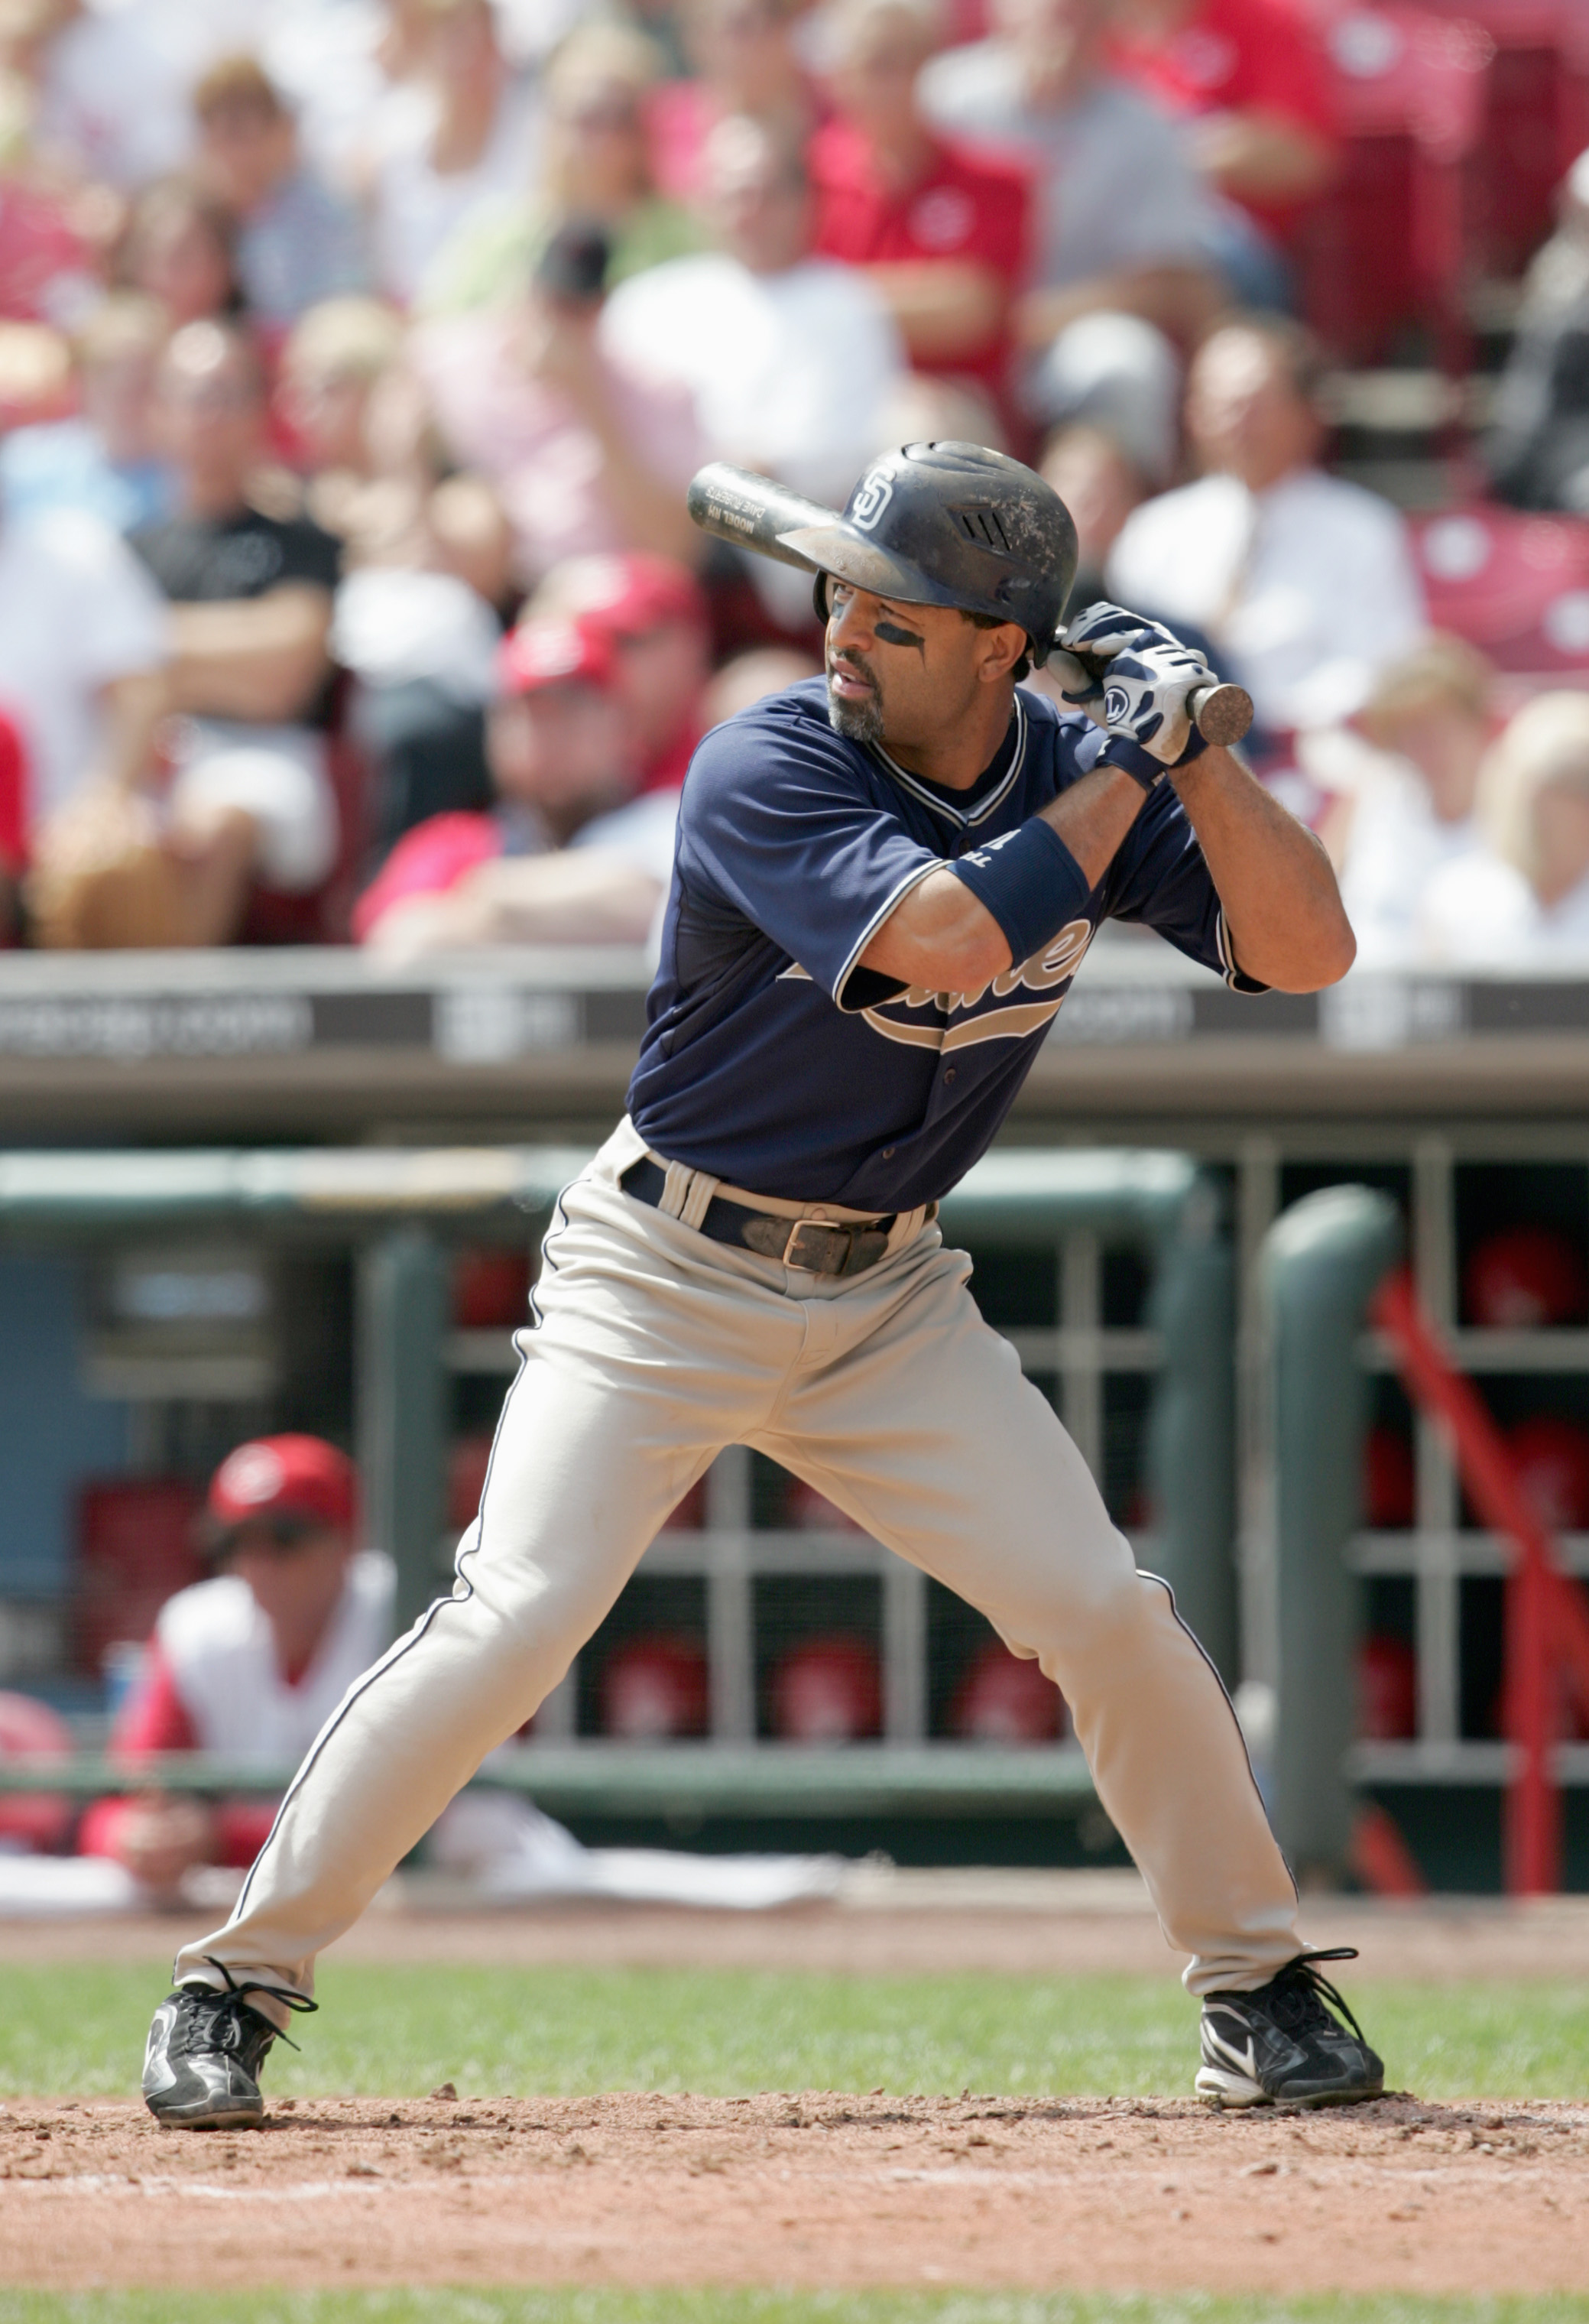 CINCINNATI - SEPTEMBER 14: Dave Roberts #10 of the San Diego Padres stands ready at bat against the Cincinnati Reds at Great American Ball Park September 14, 2006 in Cincinnati, Ohio. The Padres defeated the Reds 4 to 2. (Photo by Andy Lyons/Getty Images)